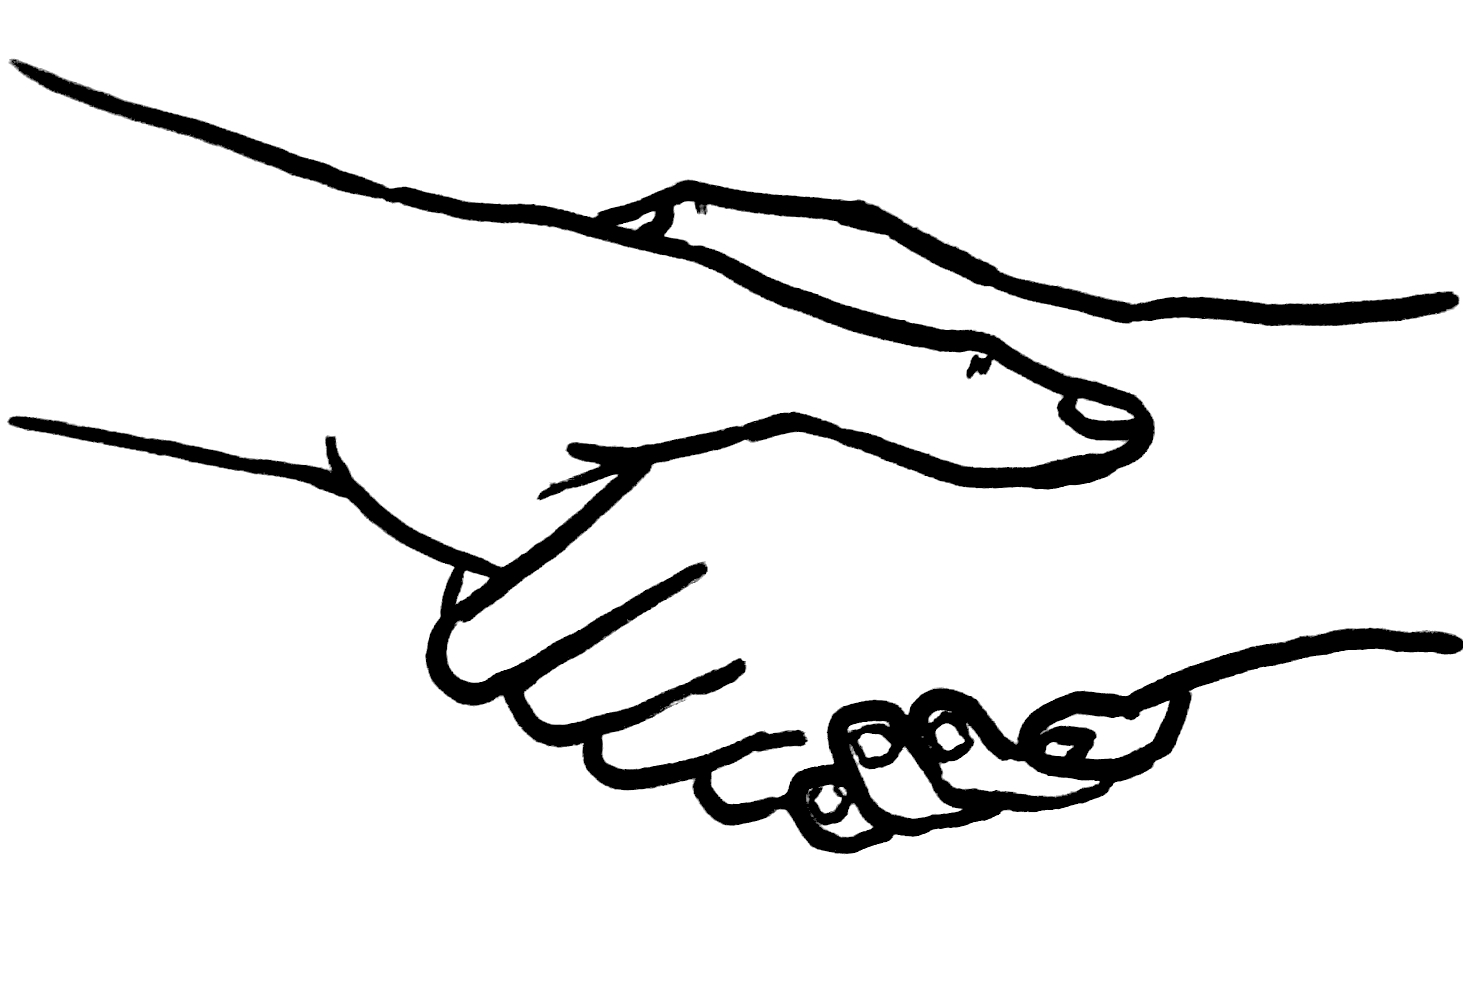 Shaking Hands Logo Clipart Best-Shaking Hands Logo Clipart Best-15